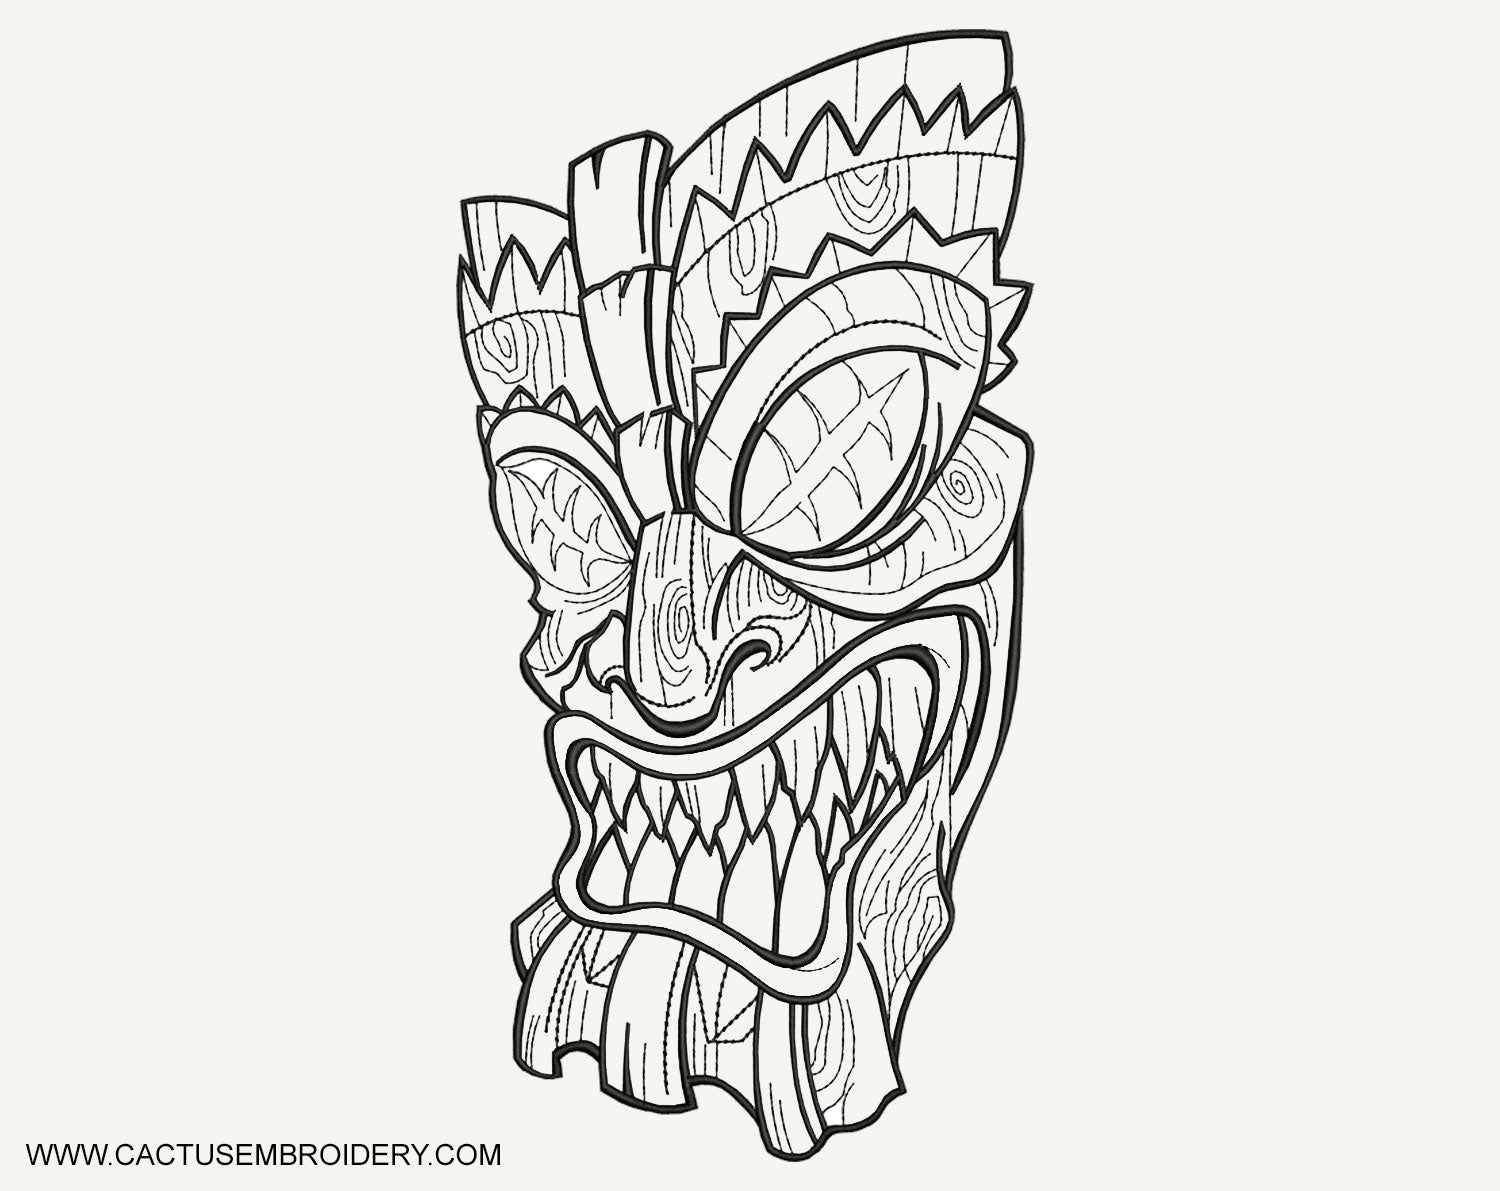 Creepy Polinesian Mask Machine Embroidery Design